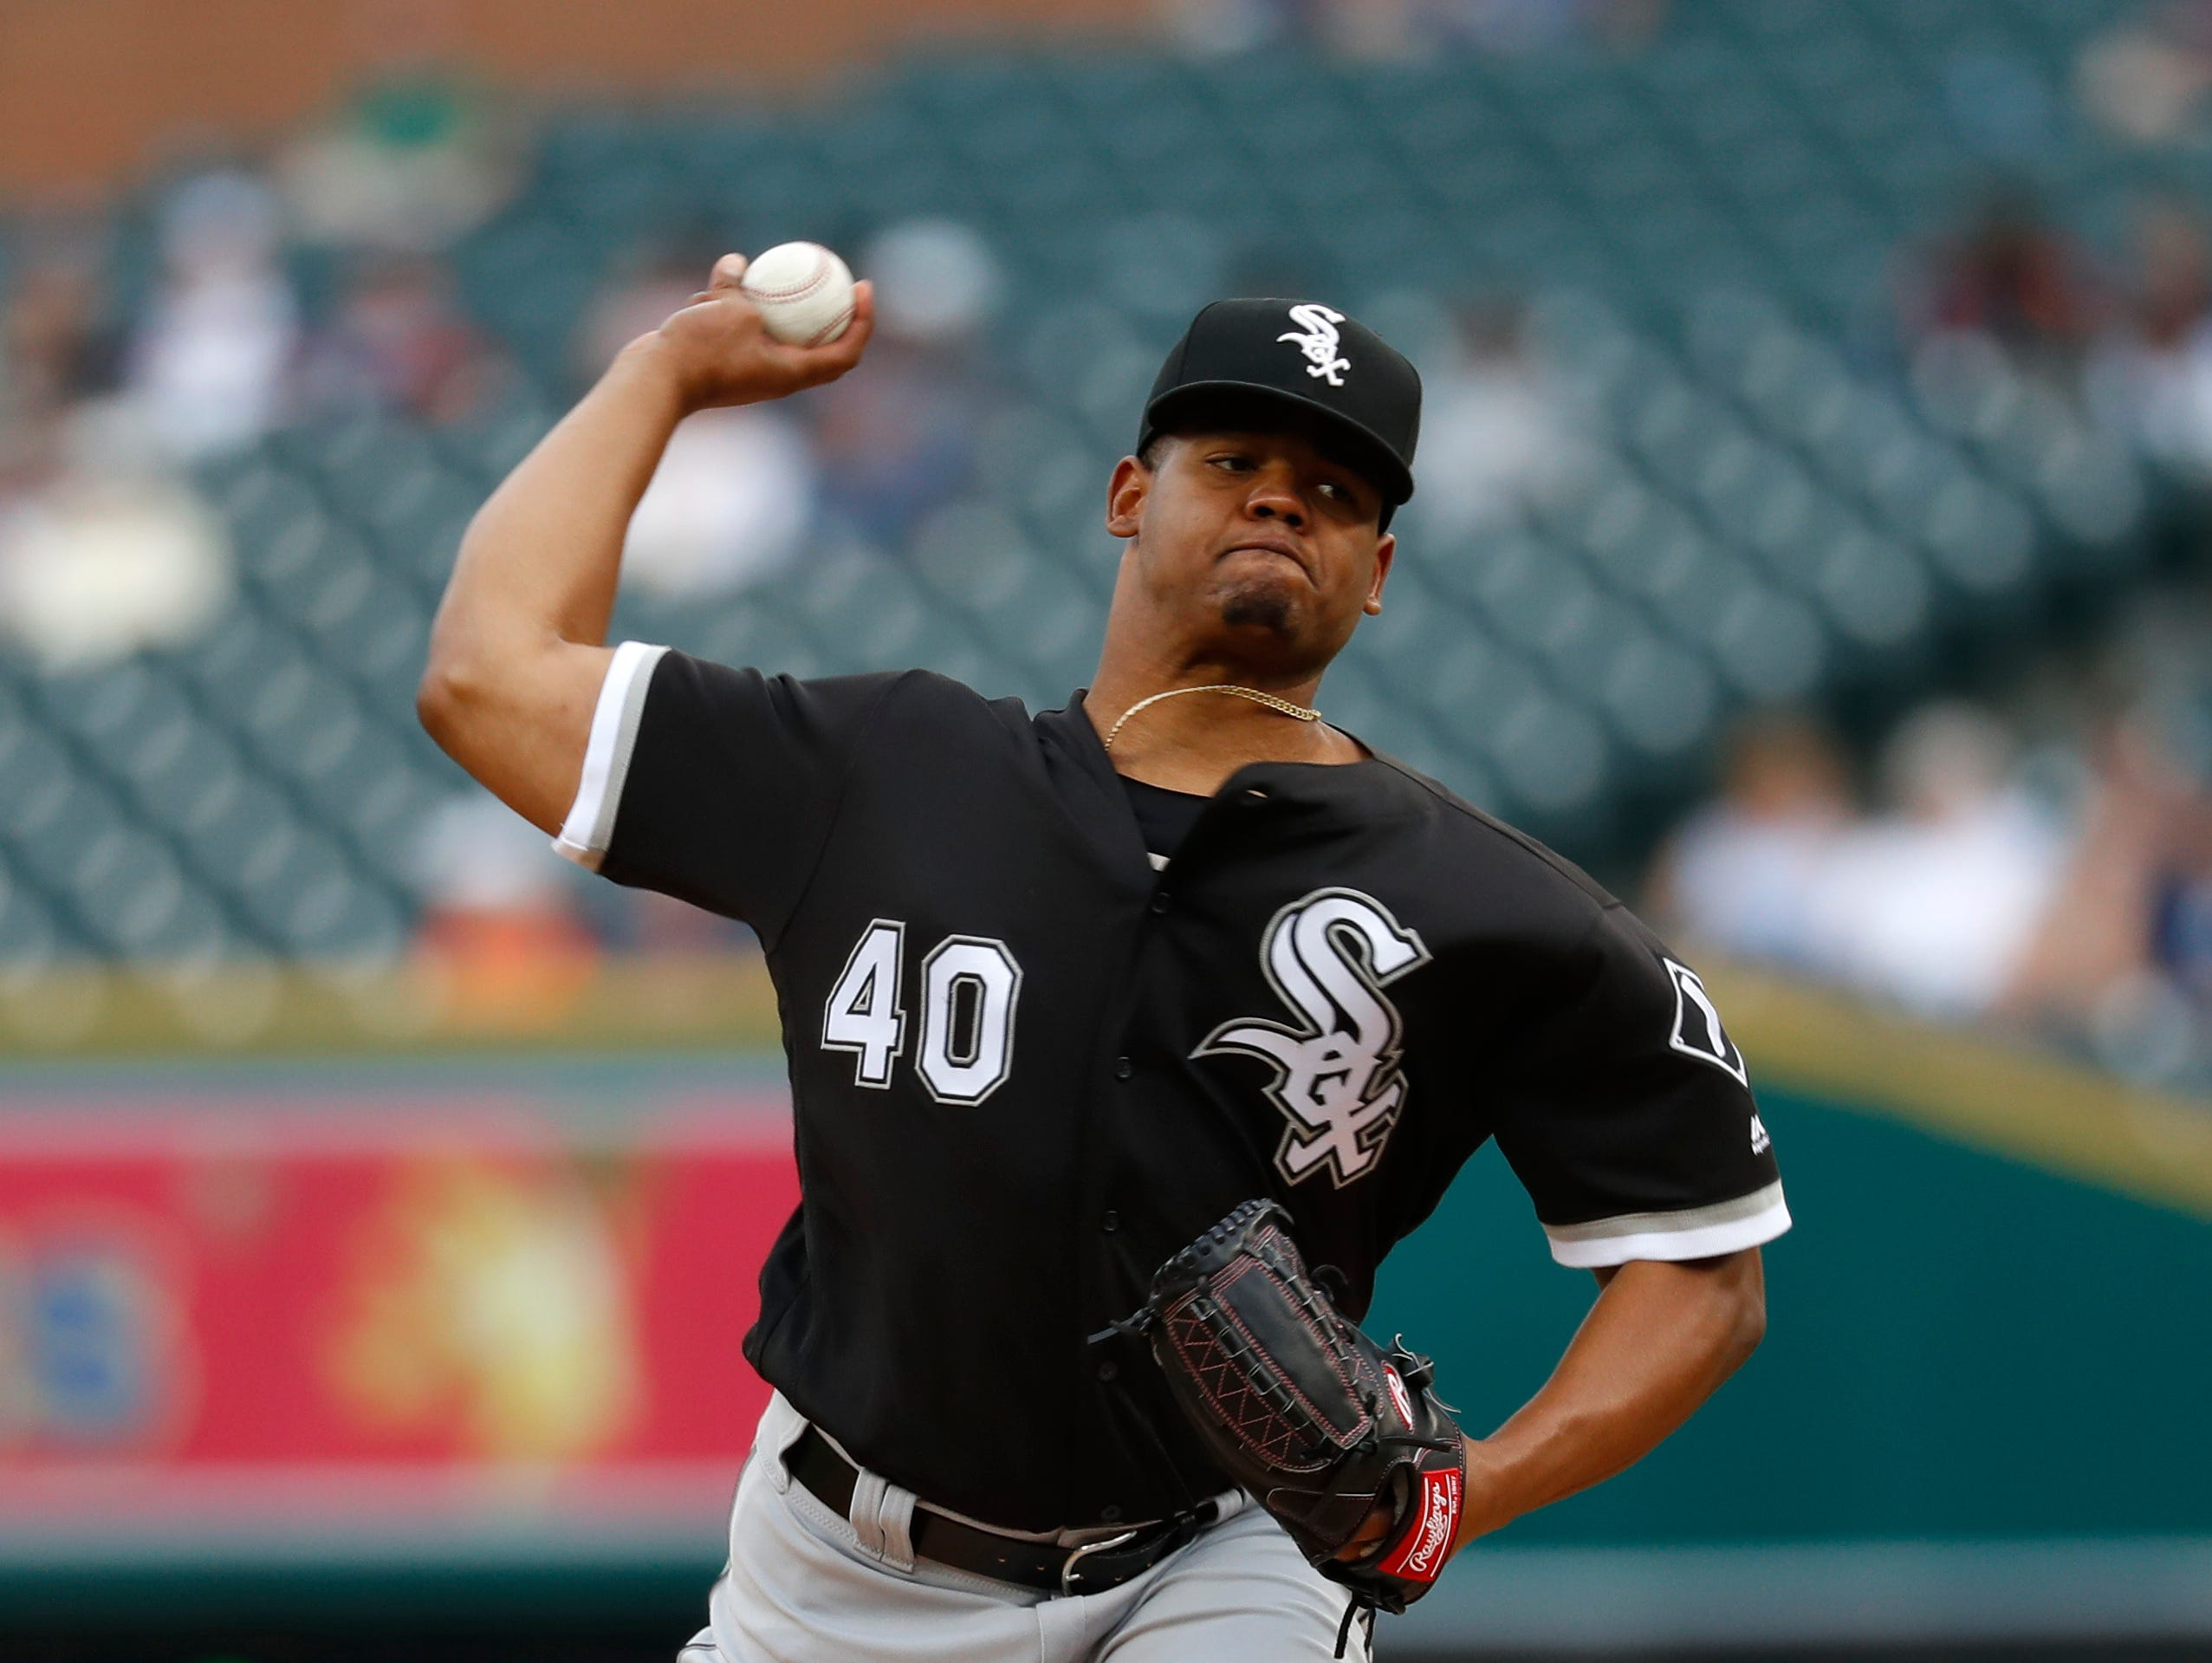 Chicago White Sox pitcher Reynaldo Lopez throws against the Detroit Tigers in the first inning.